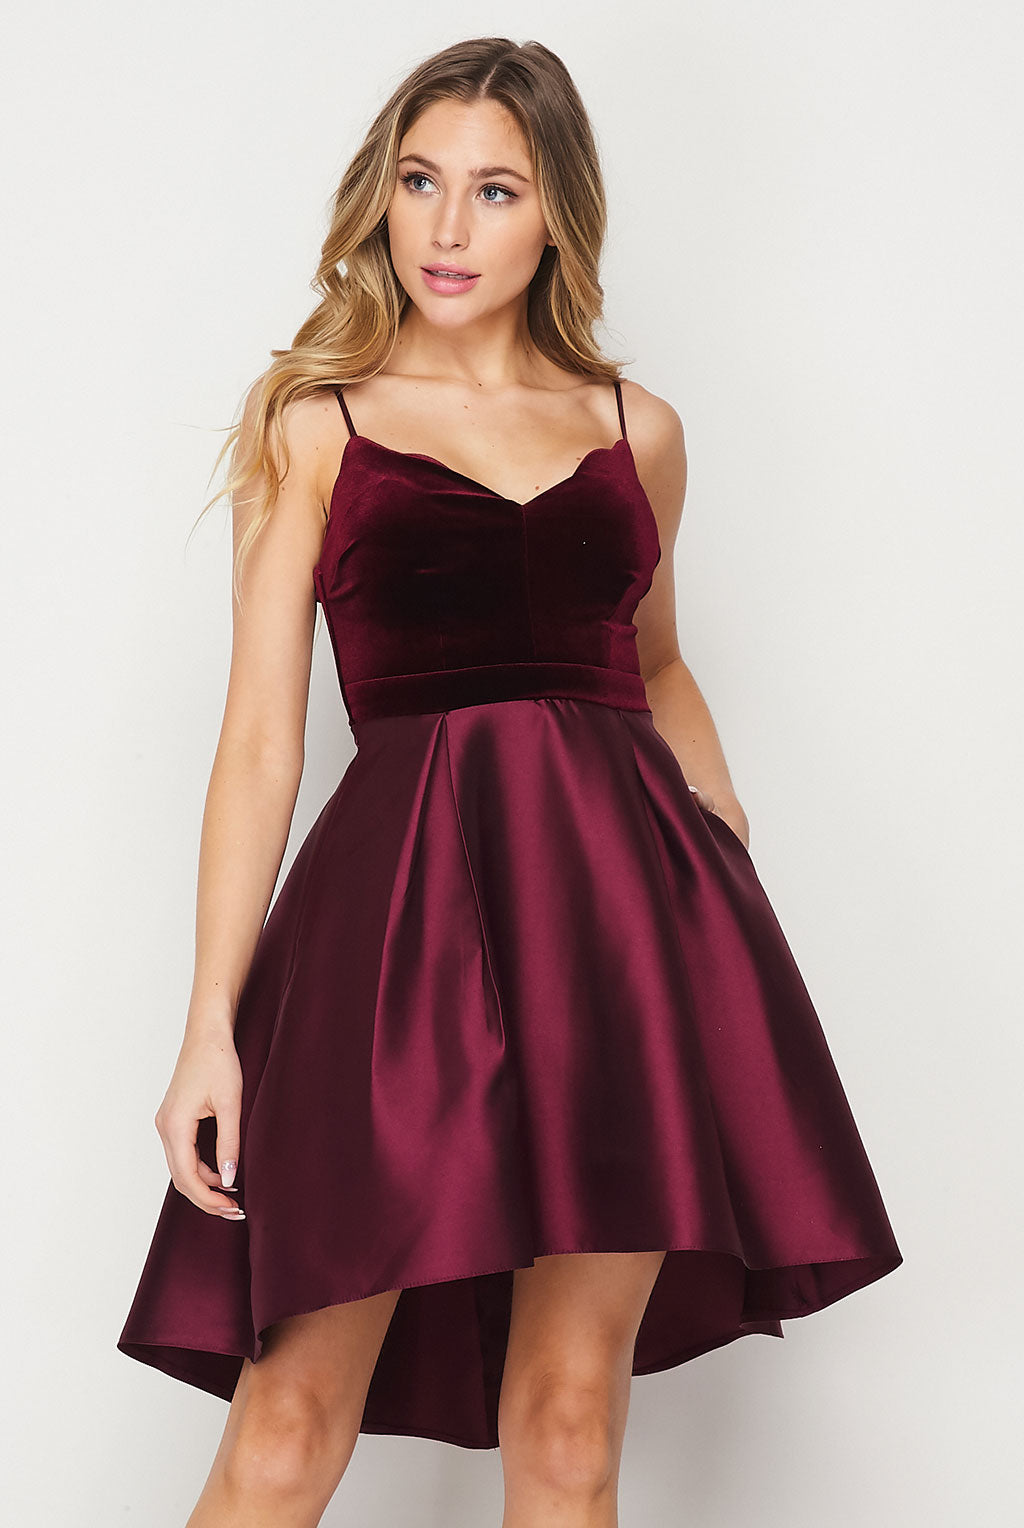 Teeze Me | High-Low Velvet Top W/ Pockets Dress | Burgundy